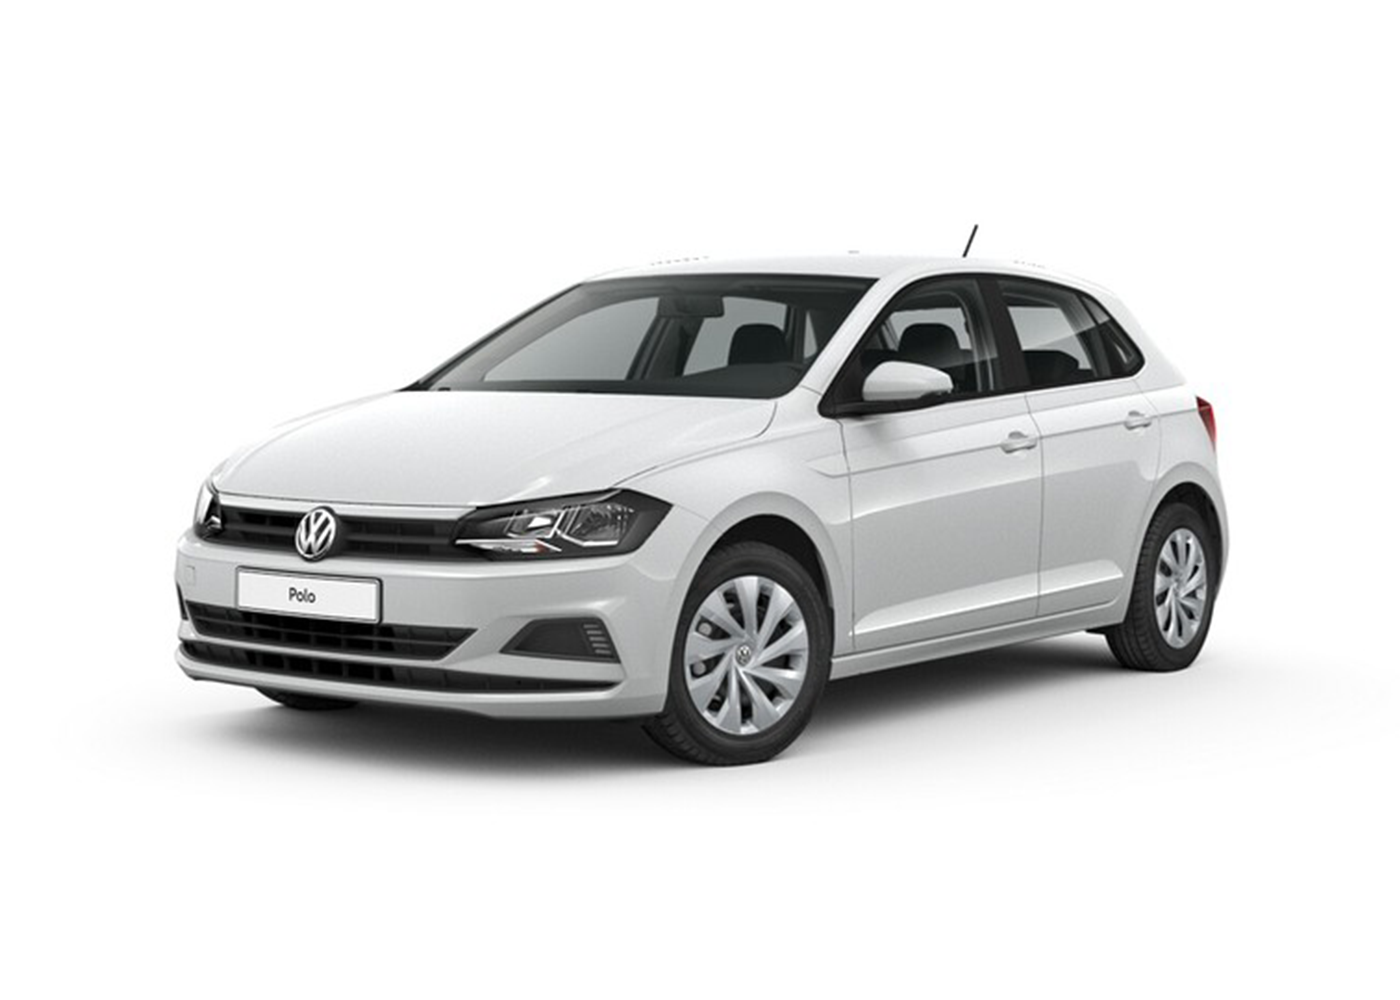 volkswagen polo 1 0 mpi 5p trendline bluemotion technology bianco carrara km0 a soli 13250 su. Black Bedroom Furniture Sets. Home Design Ideas